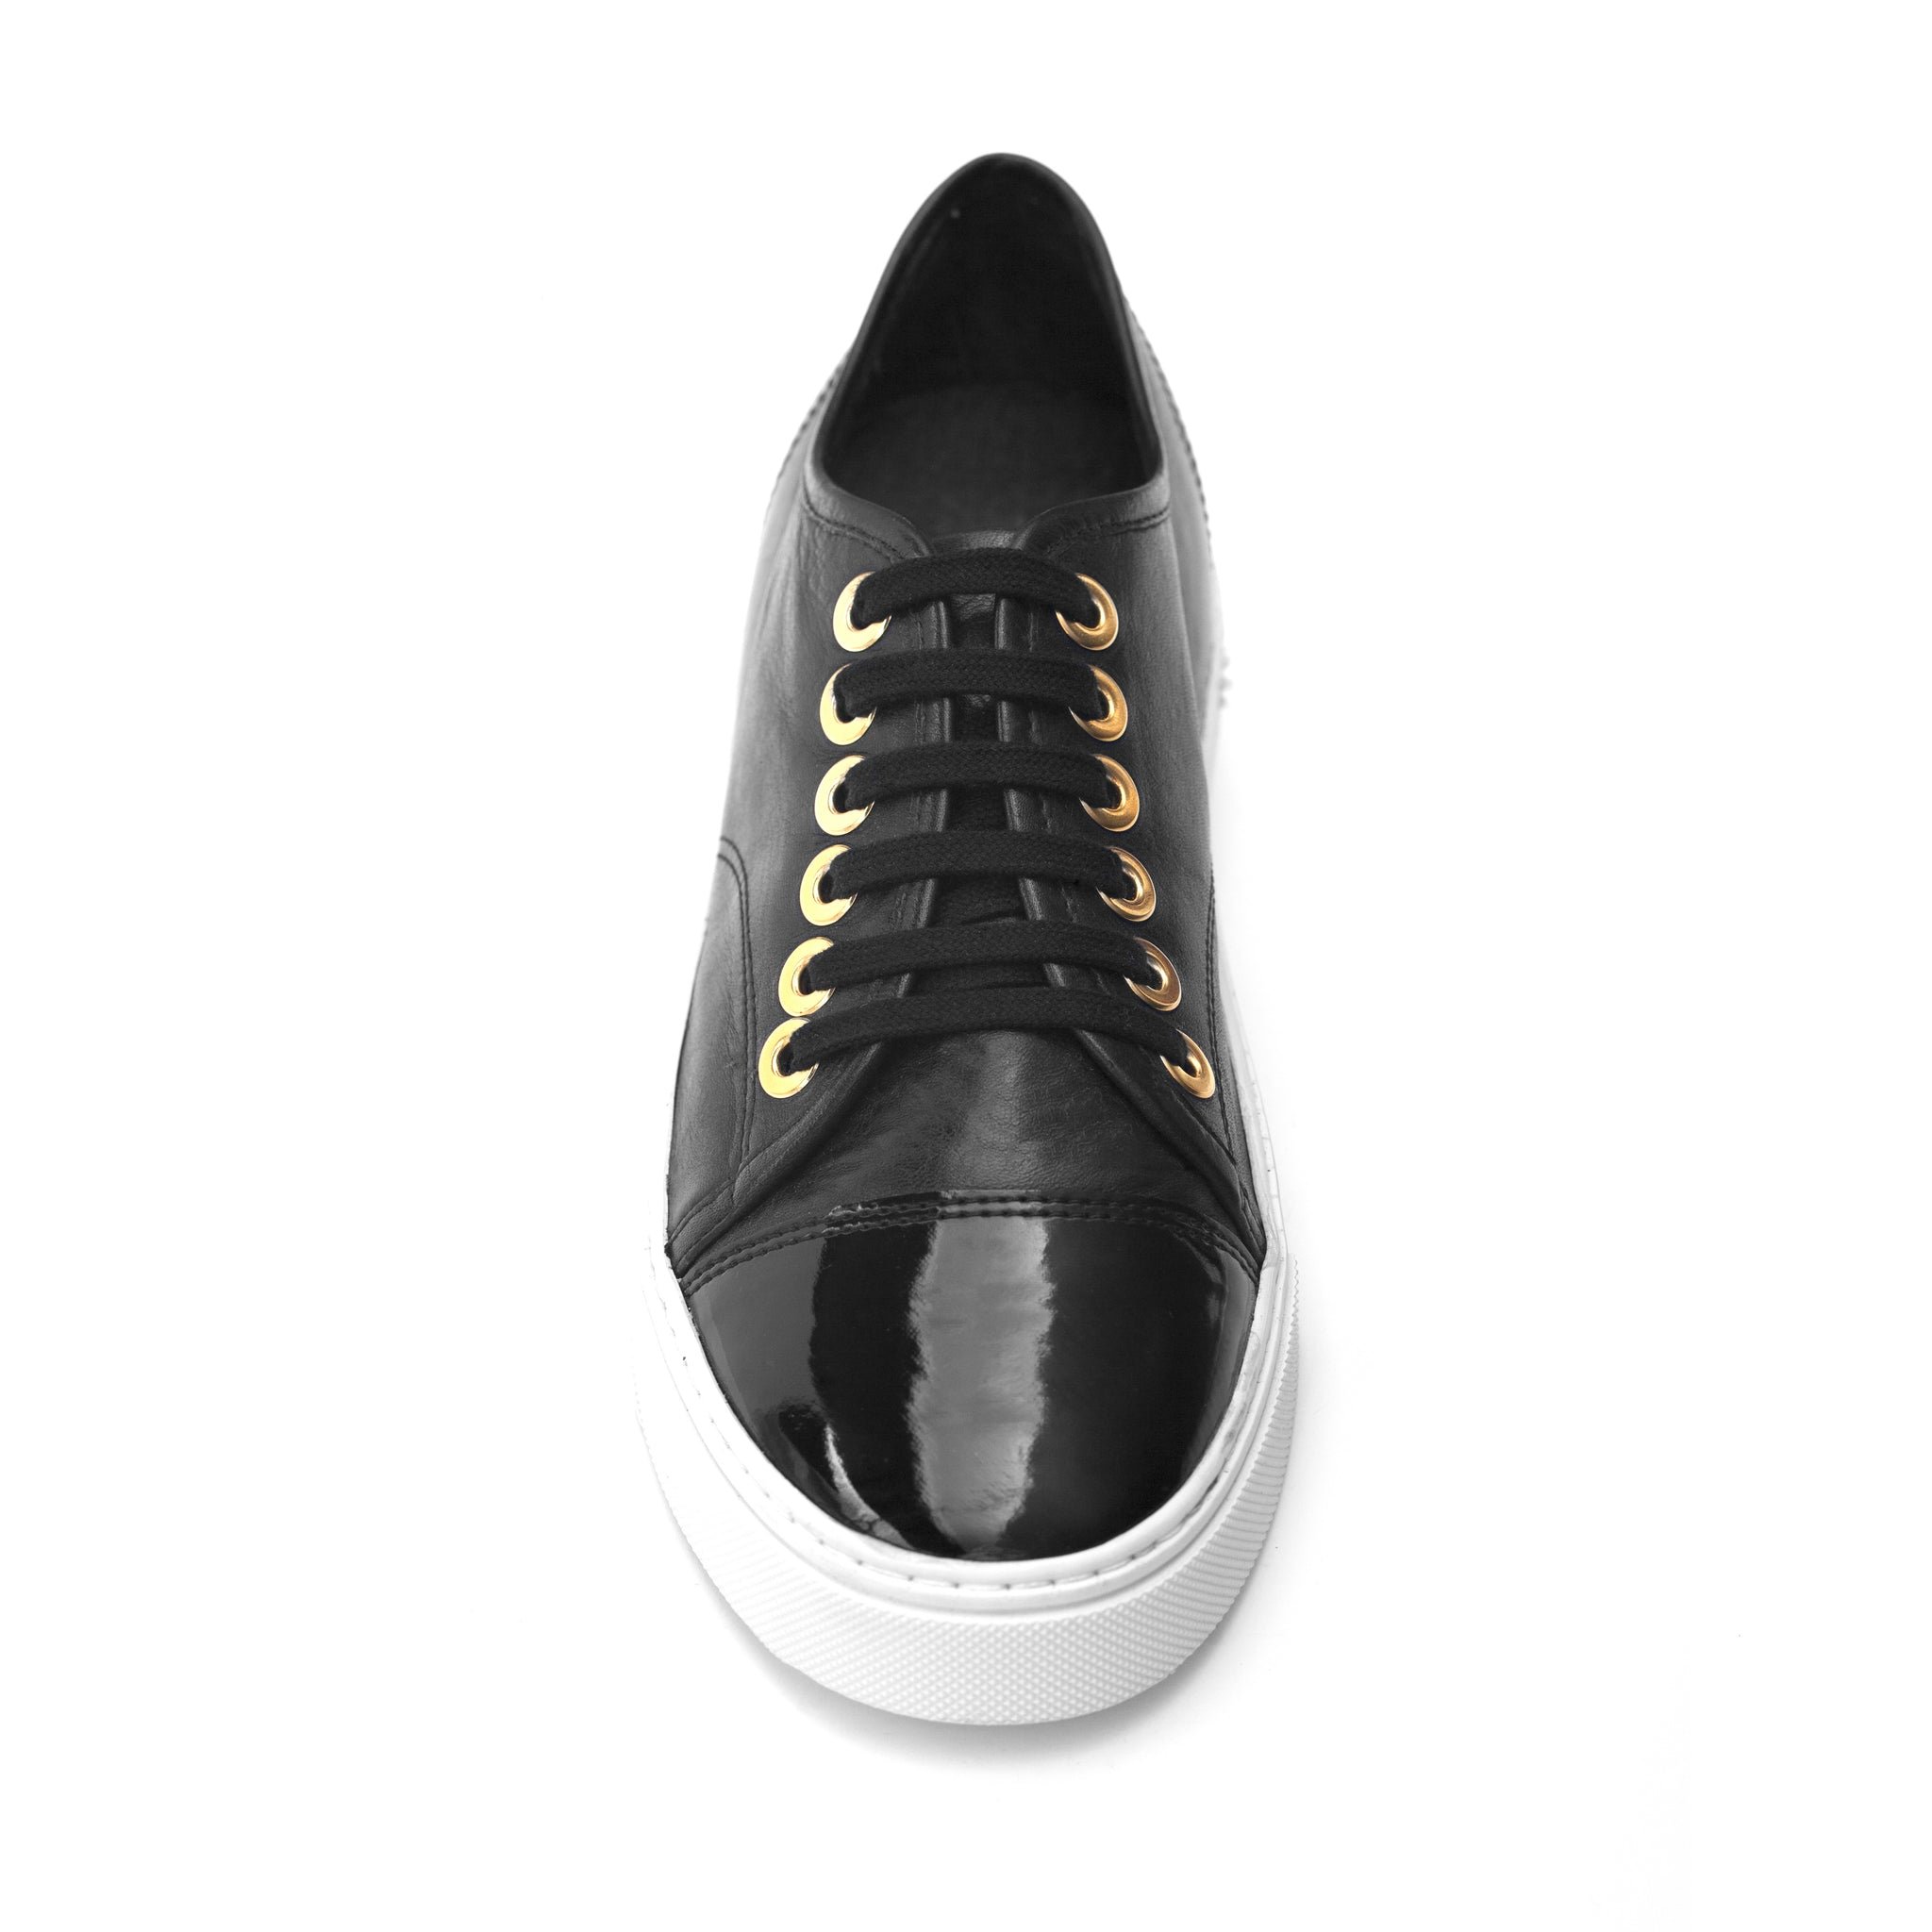 e7b20bb503 Black Leather Sneaker With Parent Leather Toe - Allysa Payne Beverly Hills